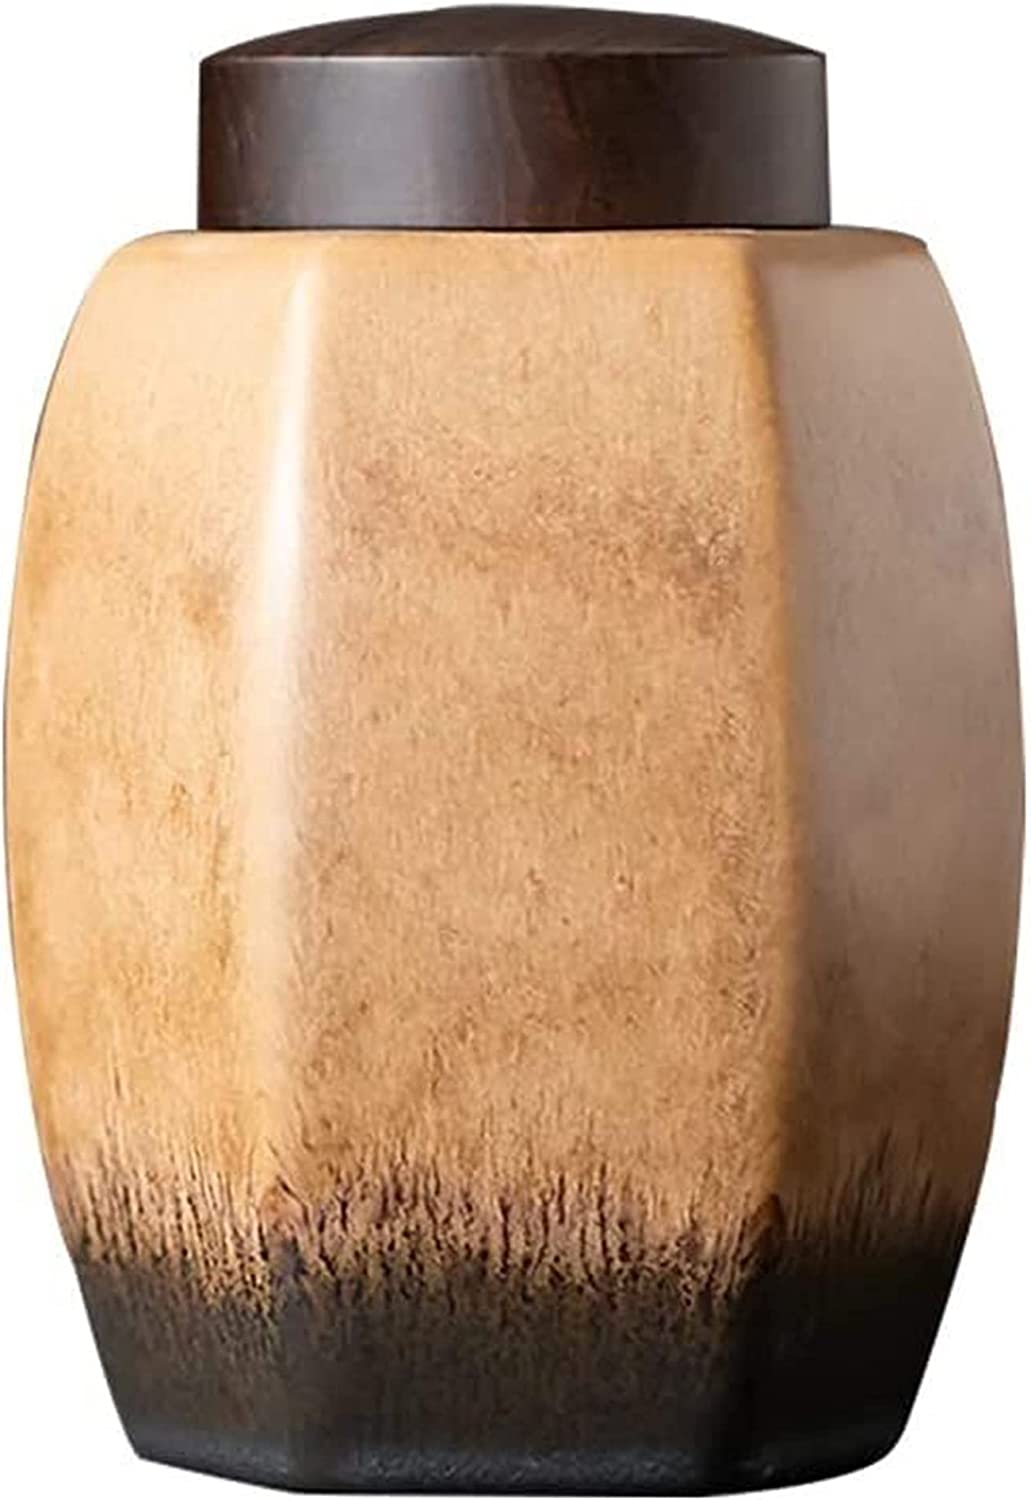 MTFZD Cremation Urn Free shipping Chicago Mall on posting reviews for Ashes Funeral Hu Adult Pet